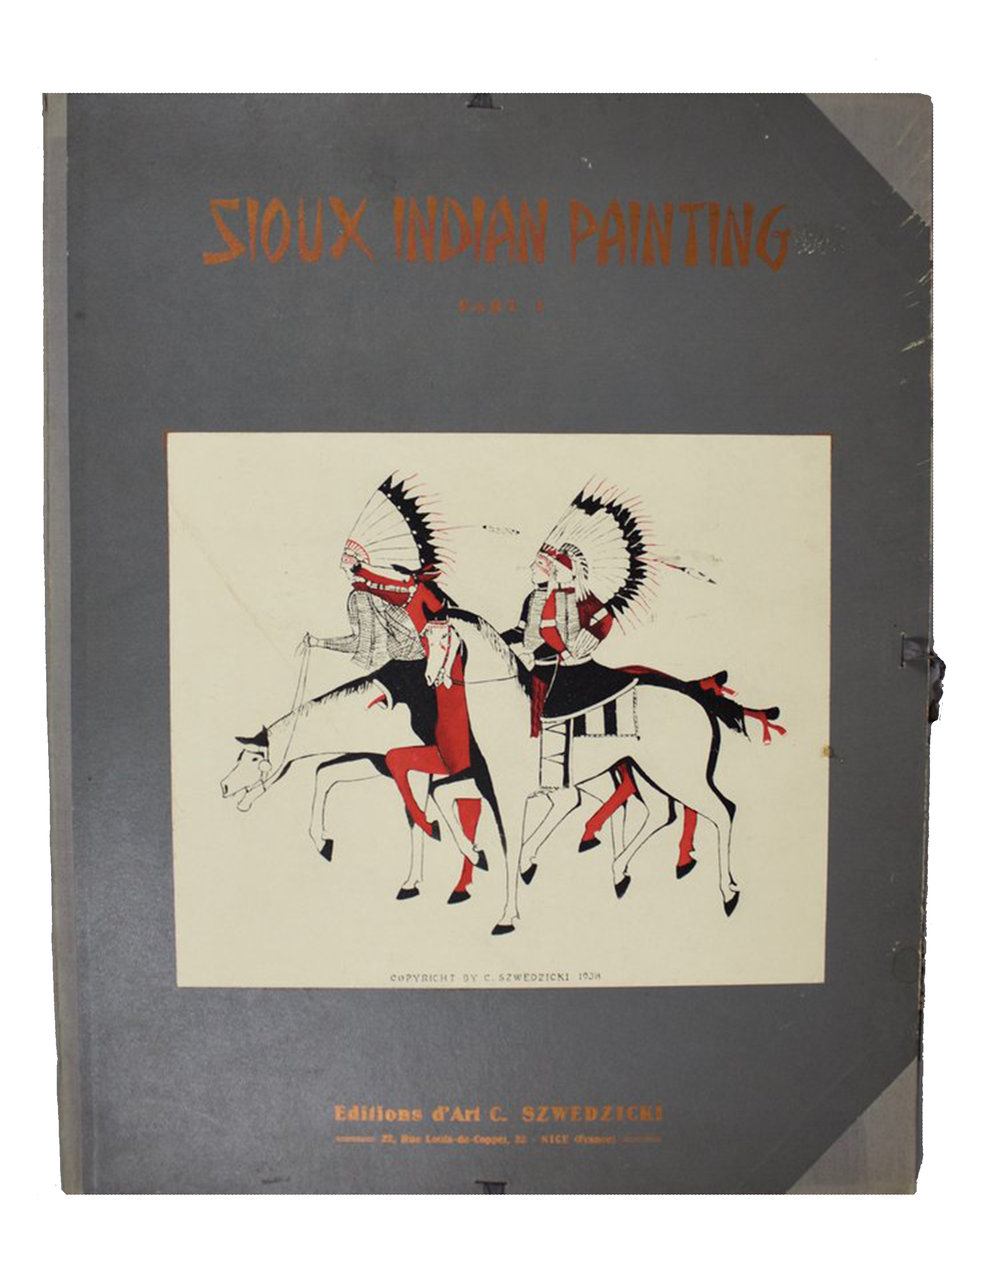 Sioux Indian Painting     And Other Tribes of the Great Plains   Printed in 1938 in Nice, France , 25 Images  Intro and Notes by H.B. Alexander , Publisher C. Szwedsicki  DV0076 // BV0771